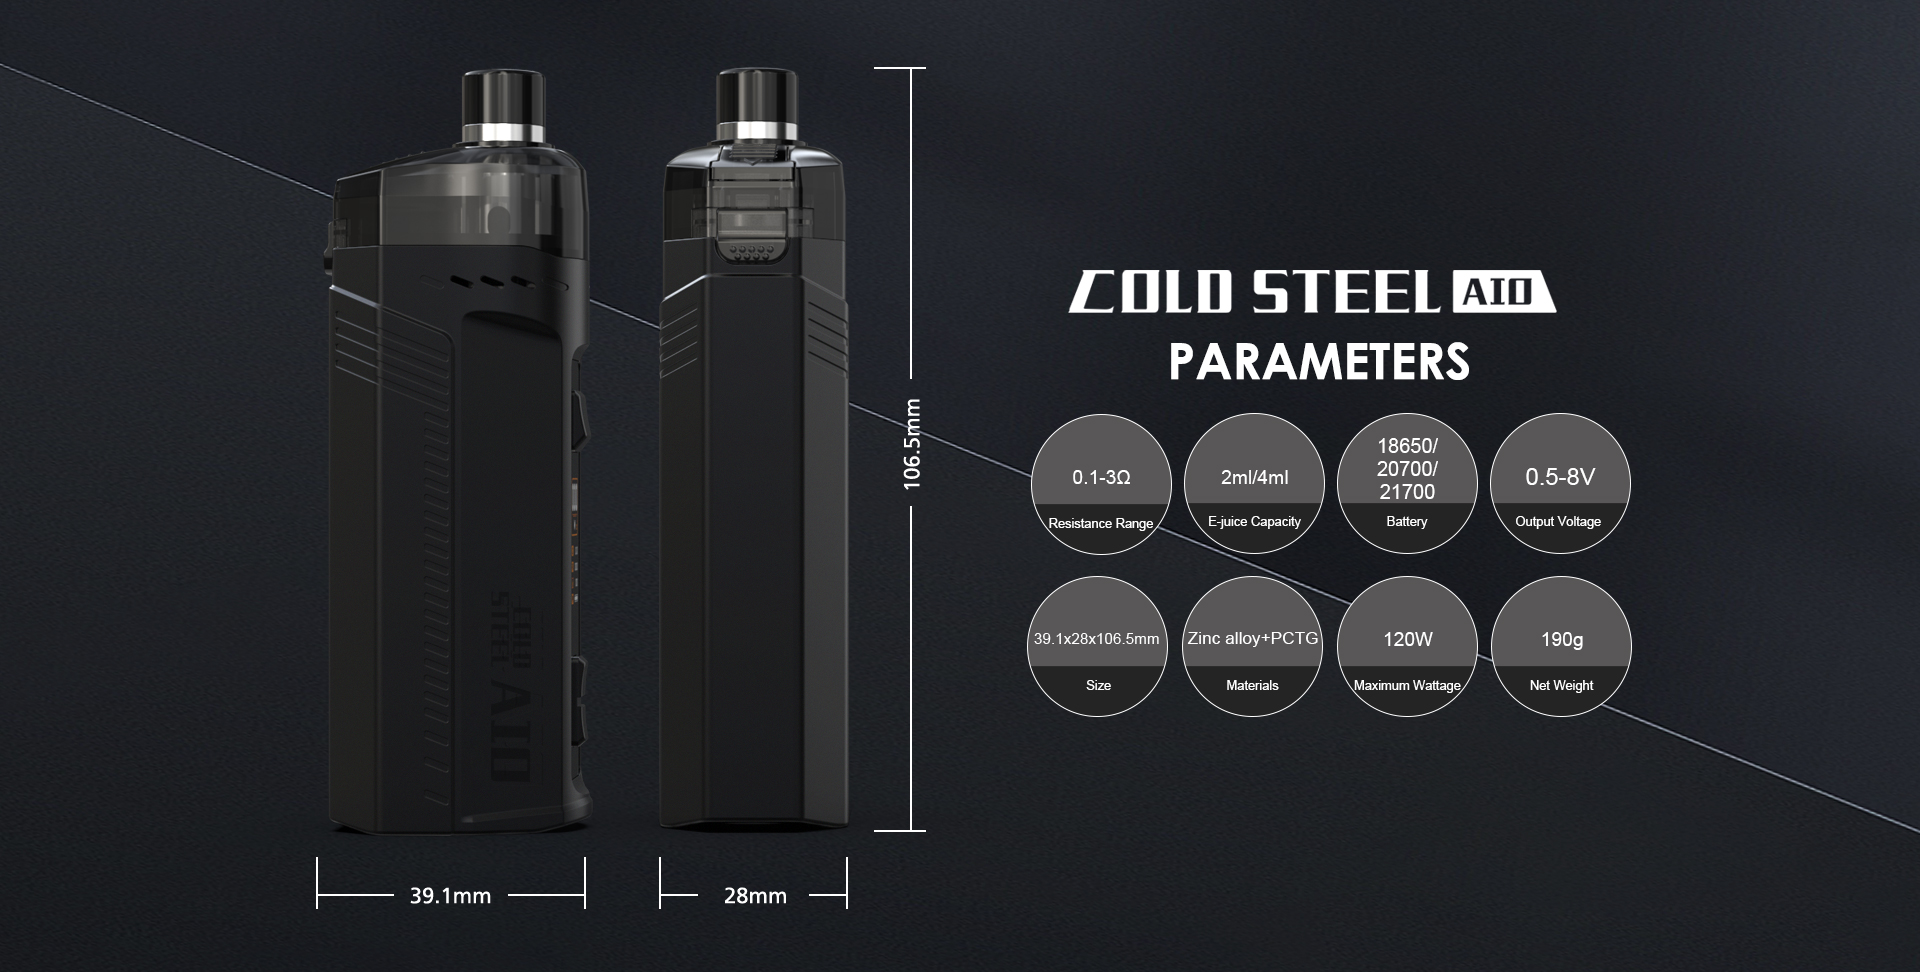 cold_steel_aio_13